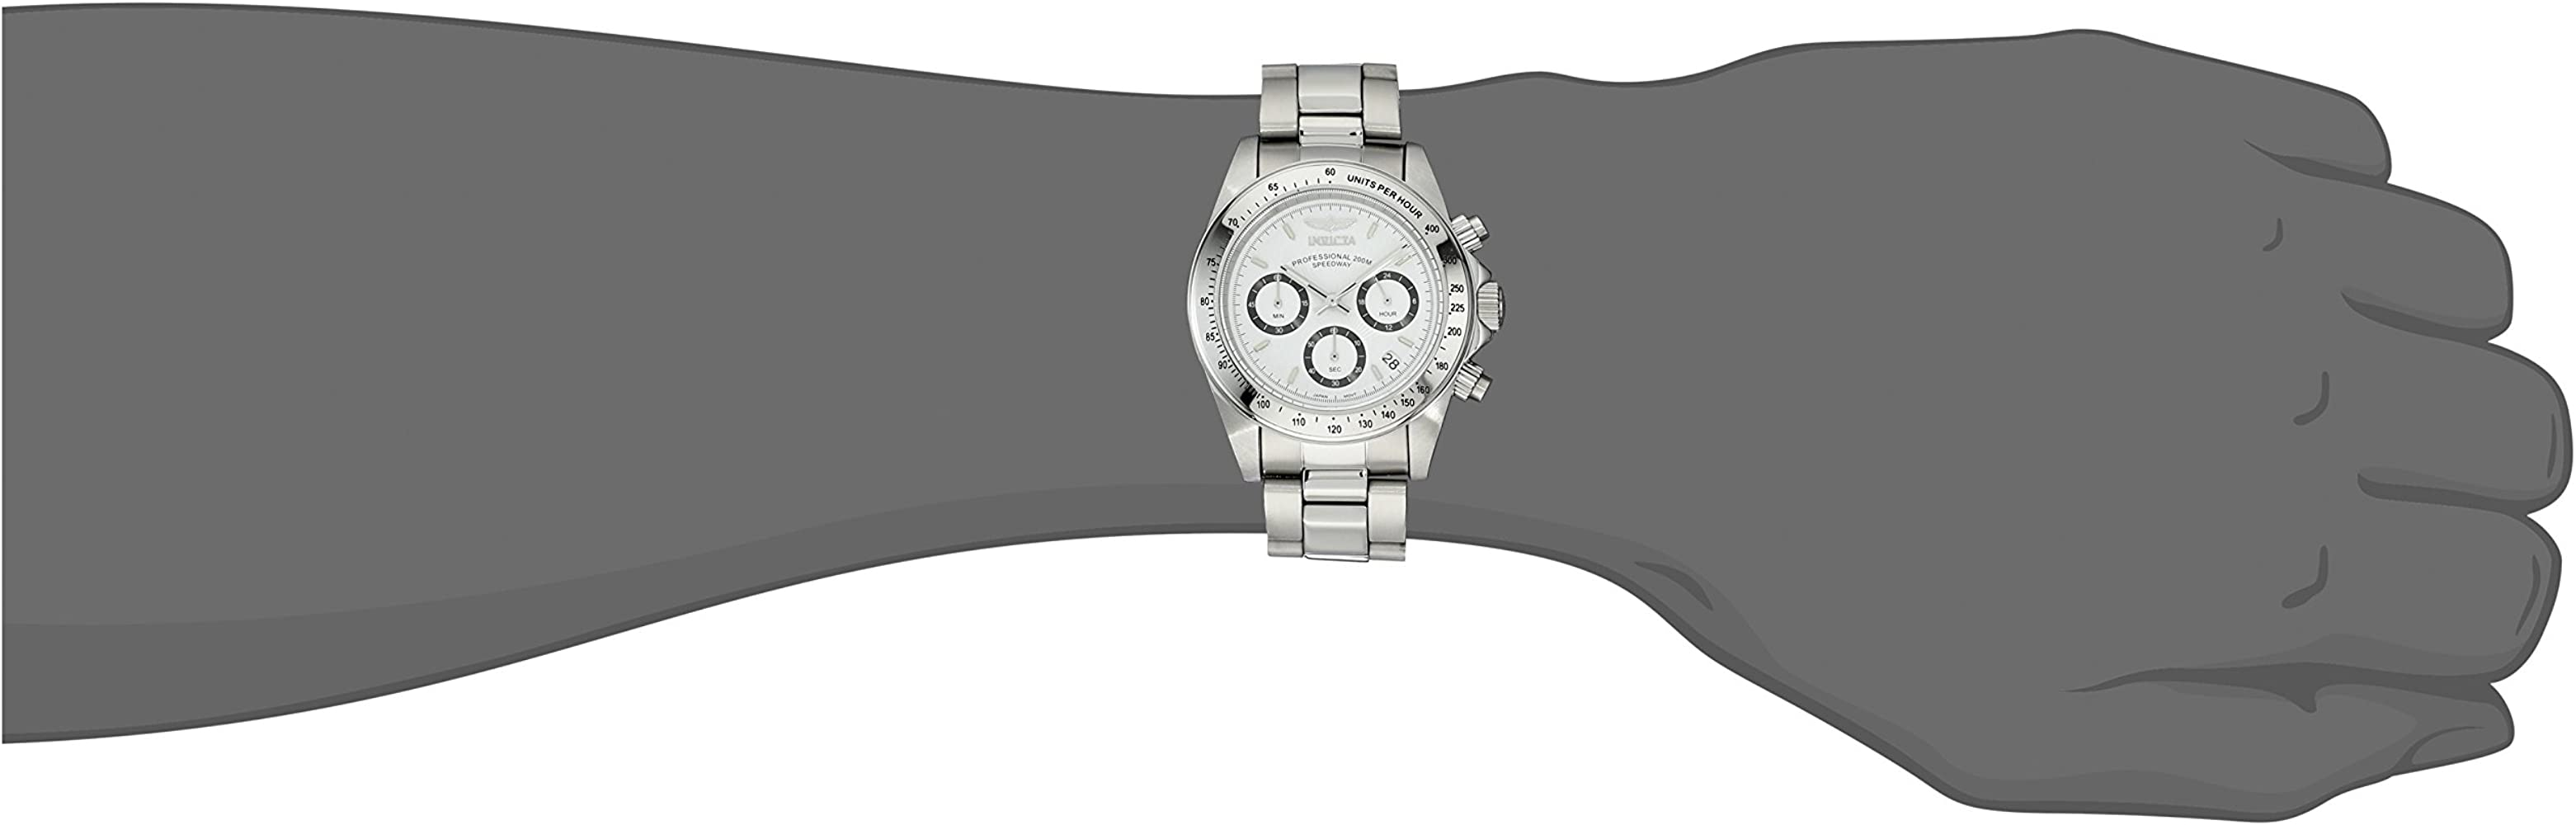 Invicta Men 9211 Speedway Collection Stainless Steel Chronograph Watch with Link Bracelet